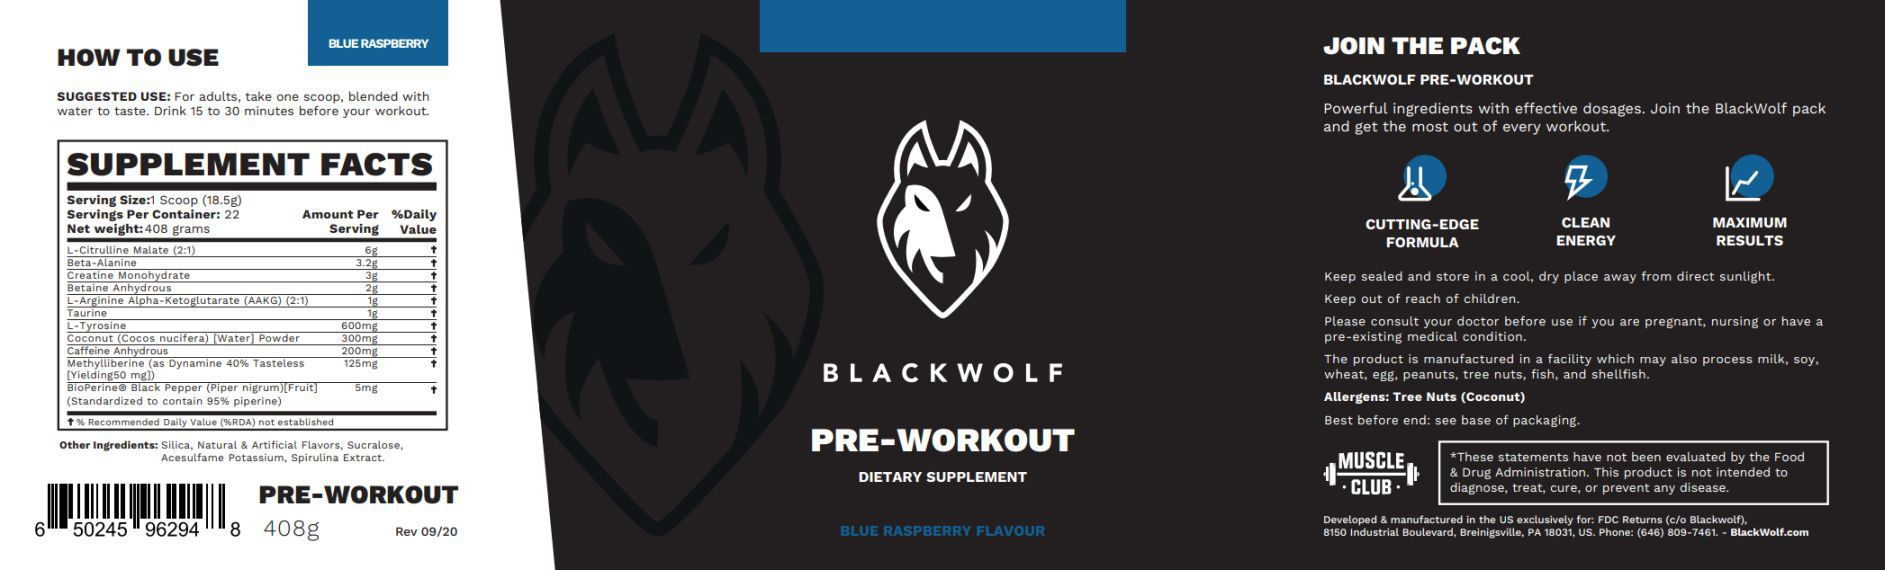 Blackwolf supplement label